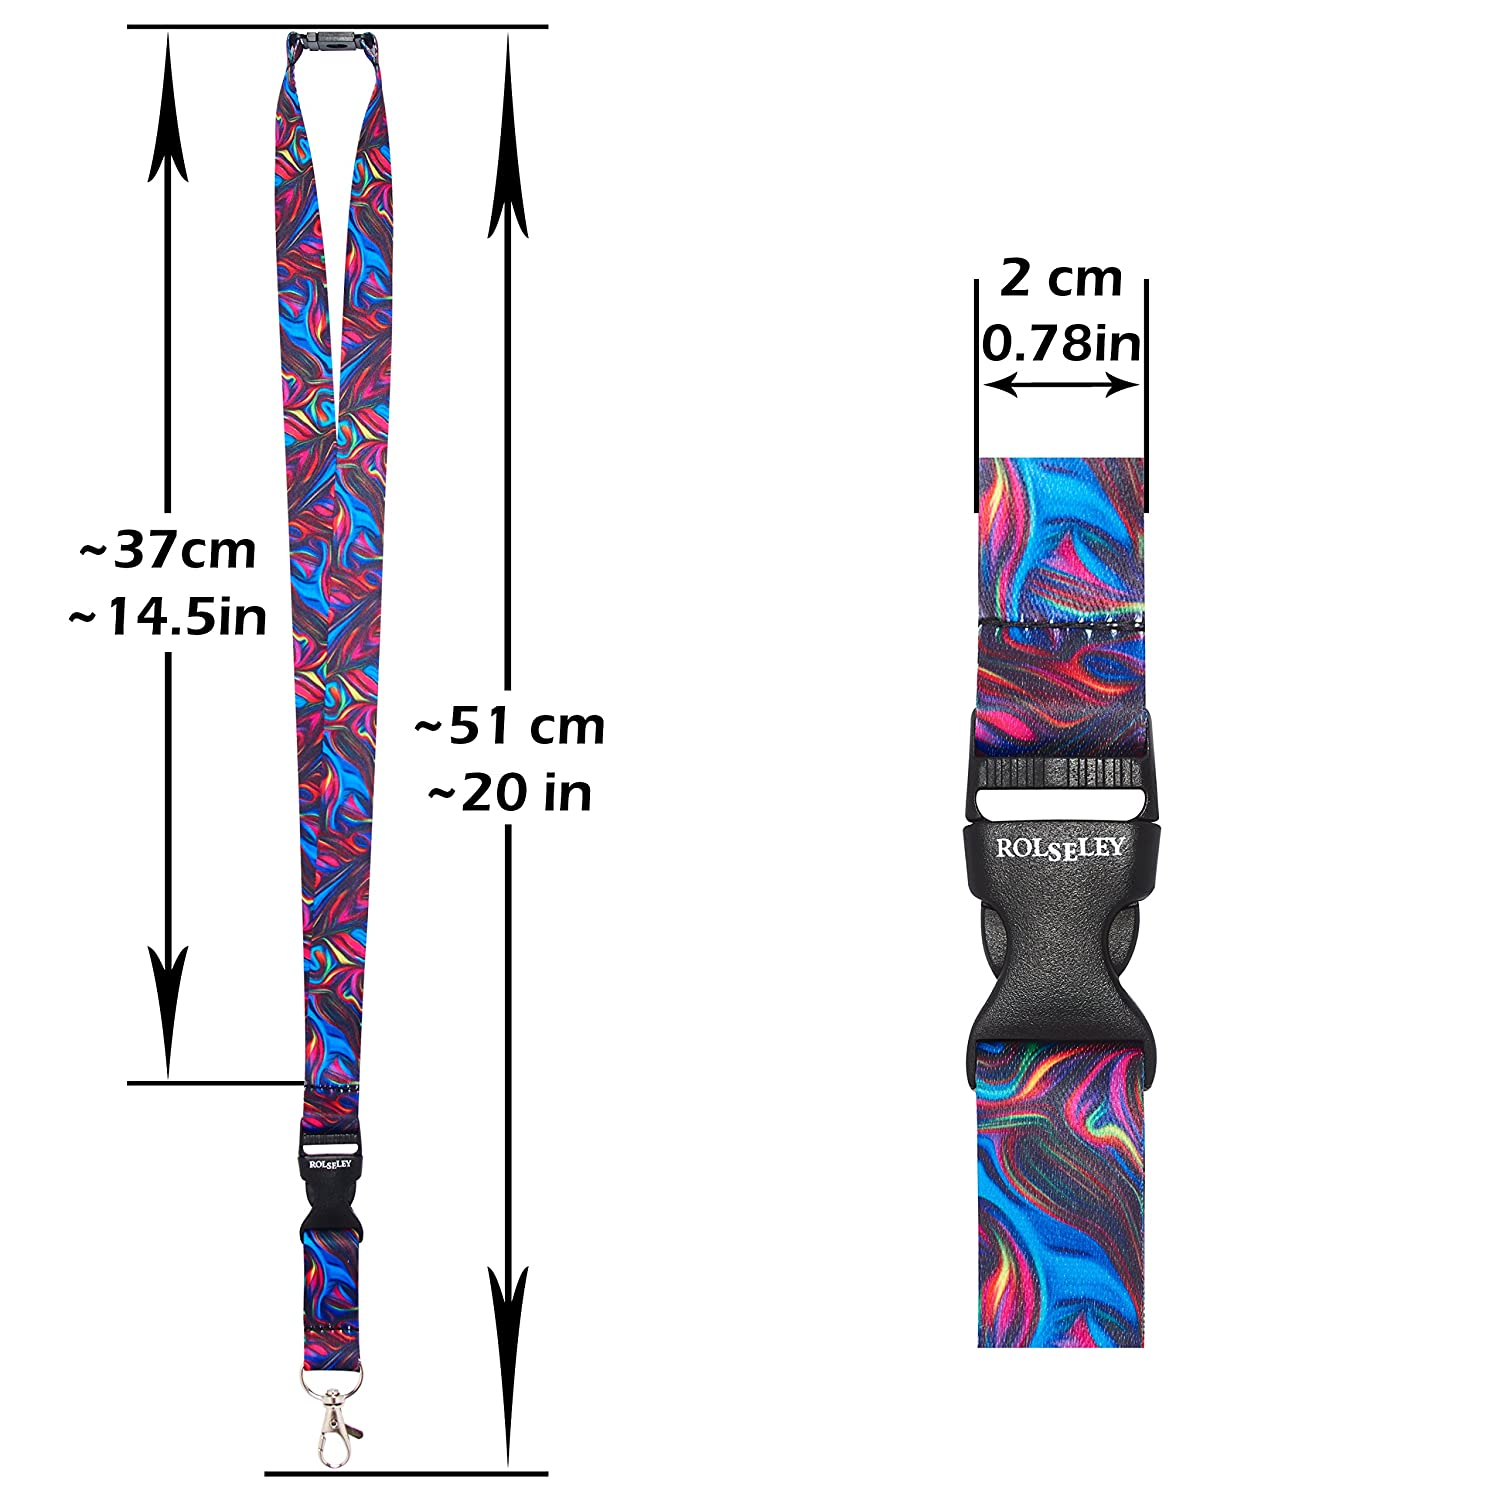 cordino da collo con diversi motivi e clip in metallo Nurse//Doctor Rolseley Lanyard